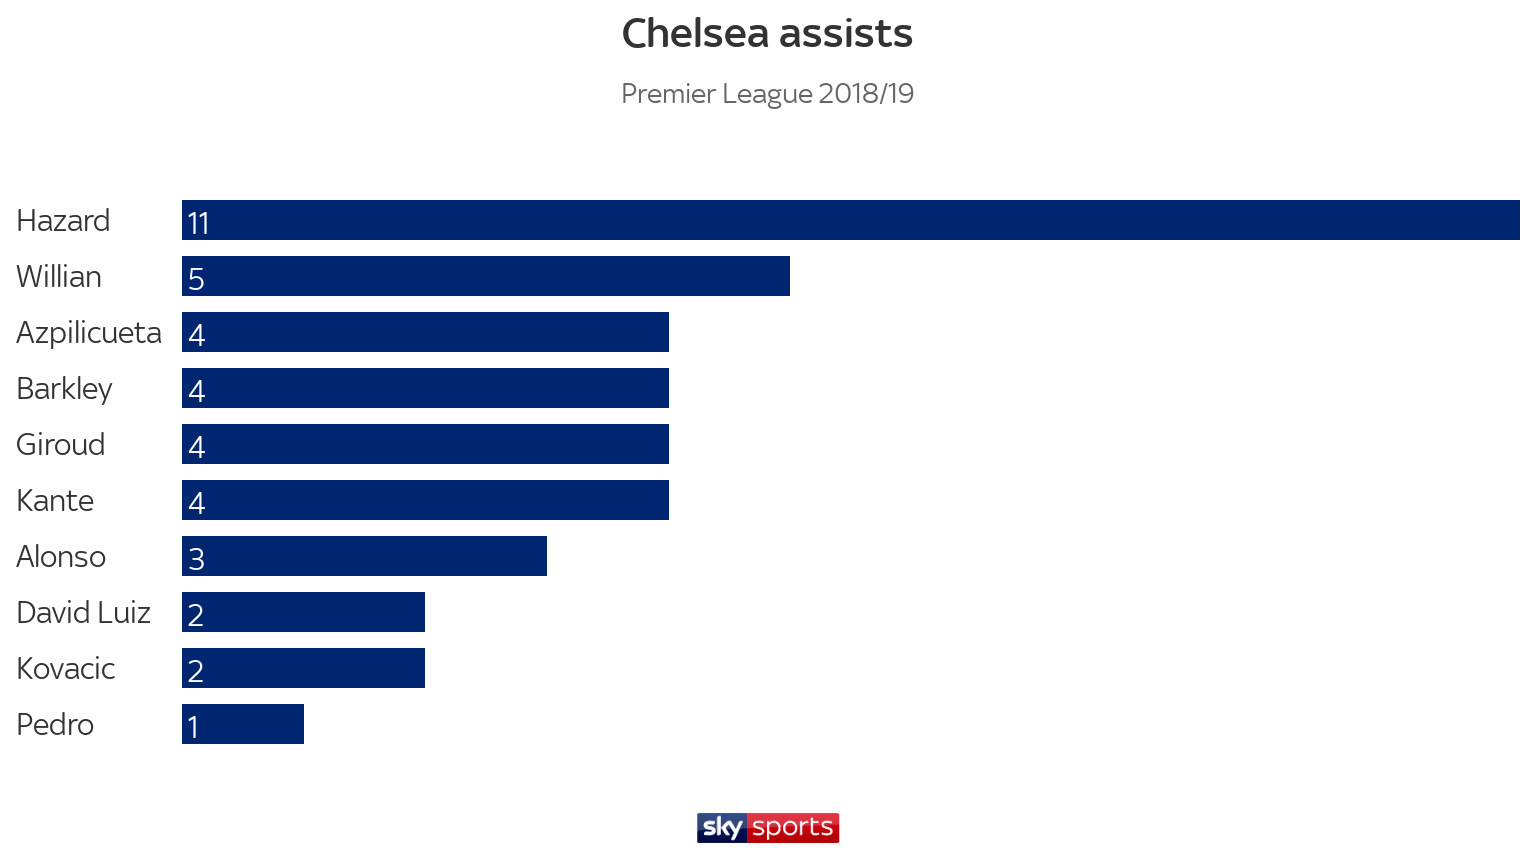 skysports-chelsea-assists-table_4605930.png